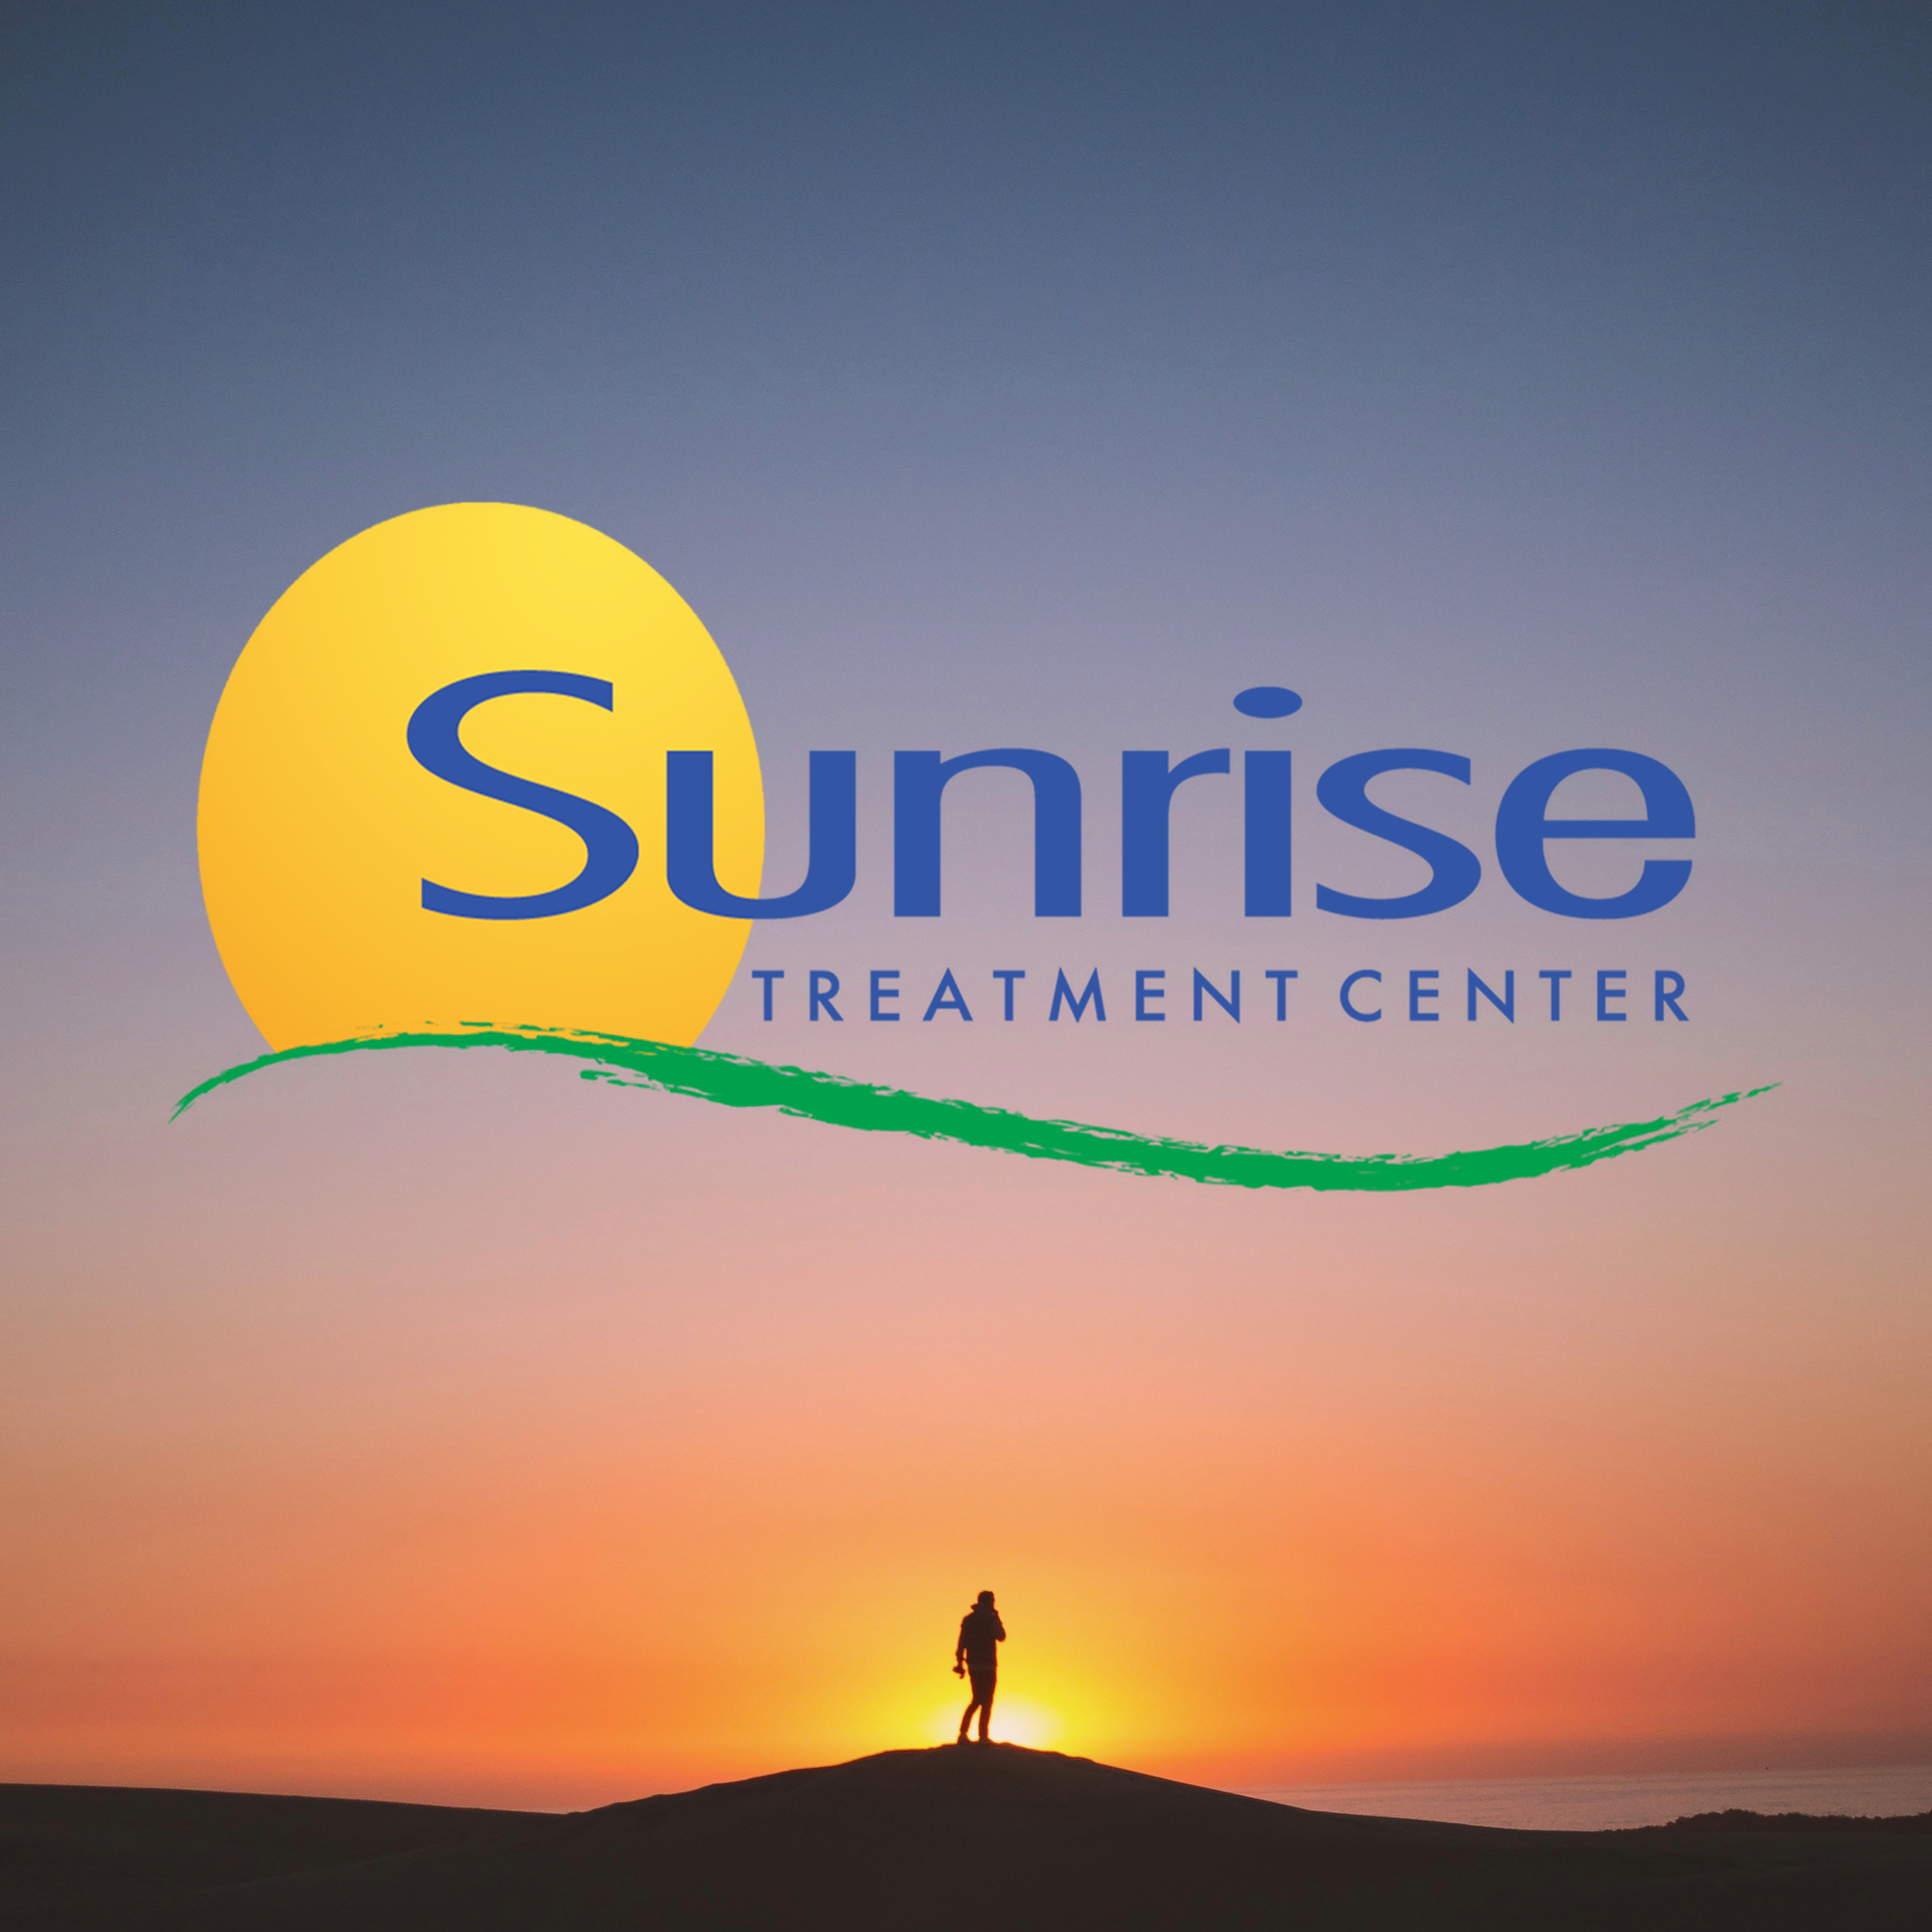 Our Mission - Our mission and core values are at the heart of everything we do at Sunrise. Through this mission we strive to provide the highest quality experience for our patients while providing a great place to work for our employees.